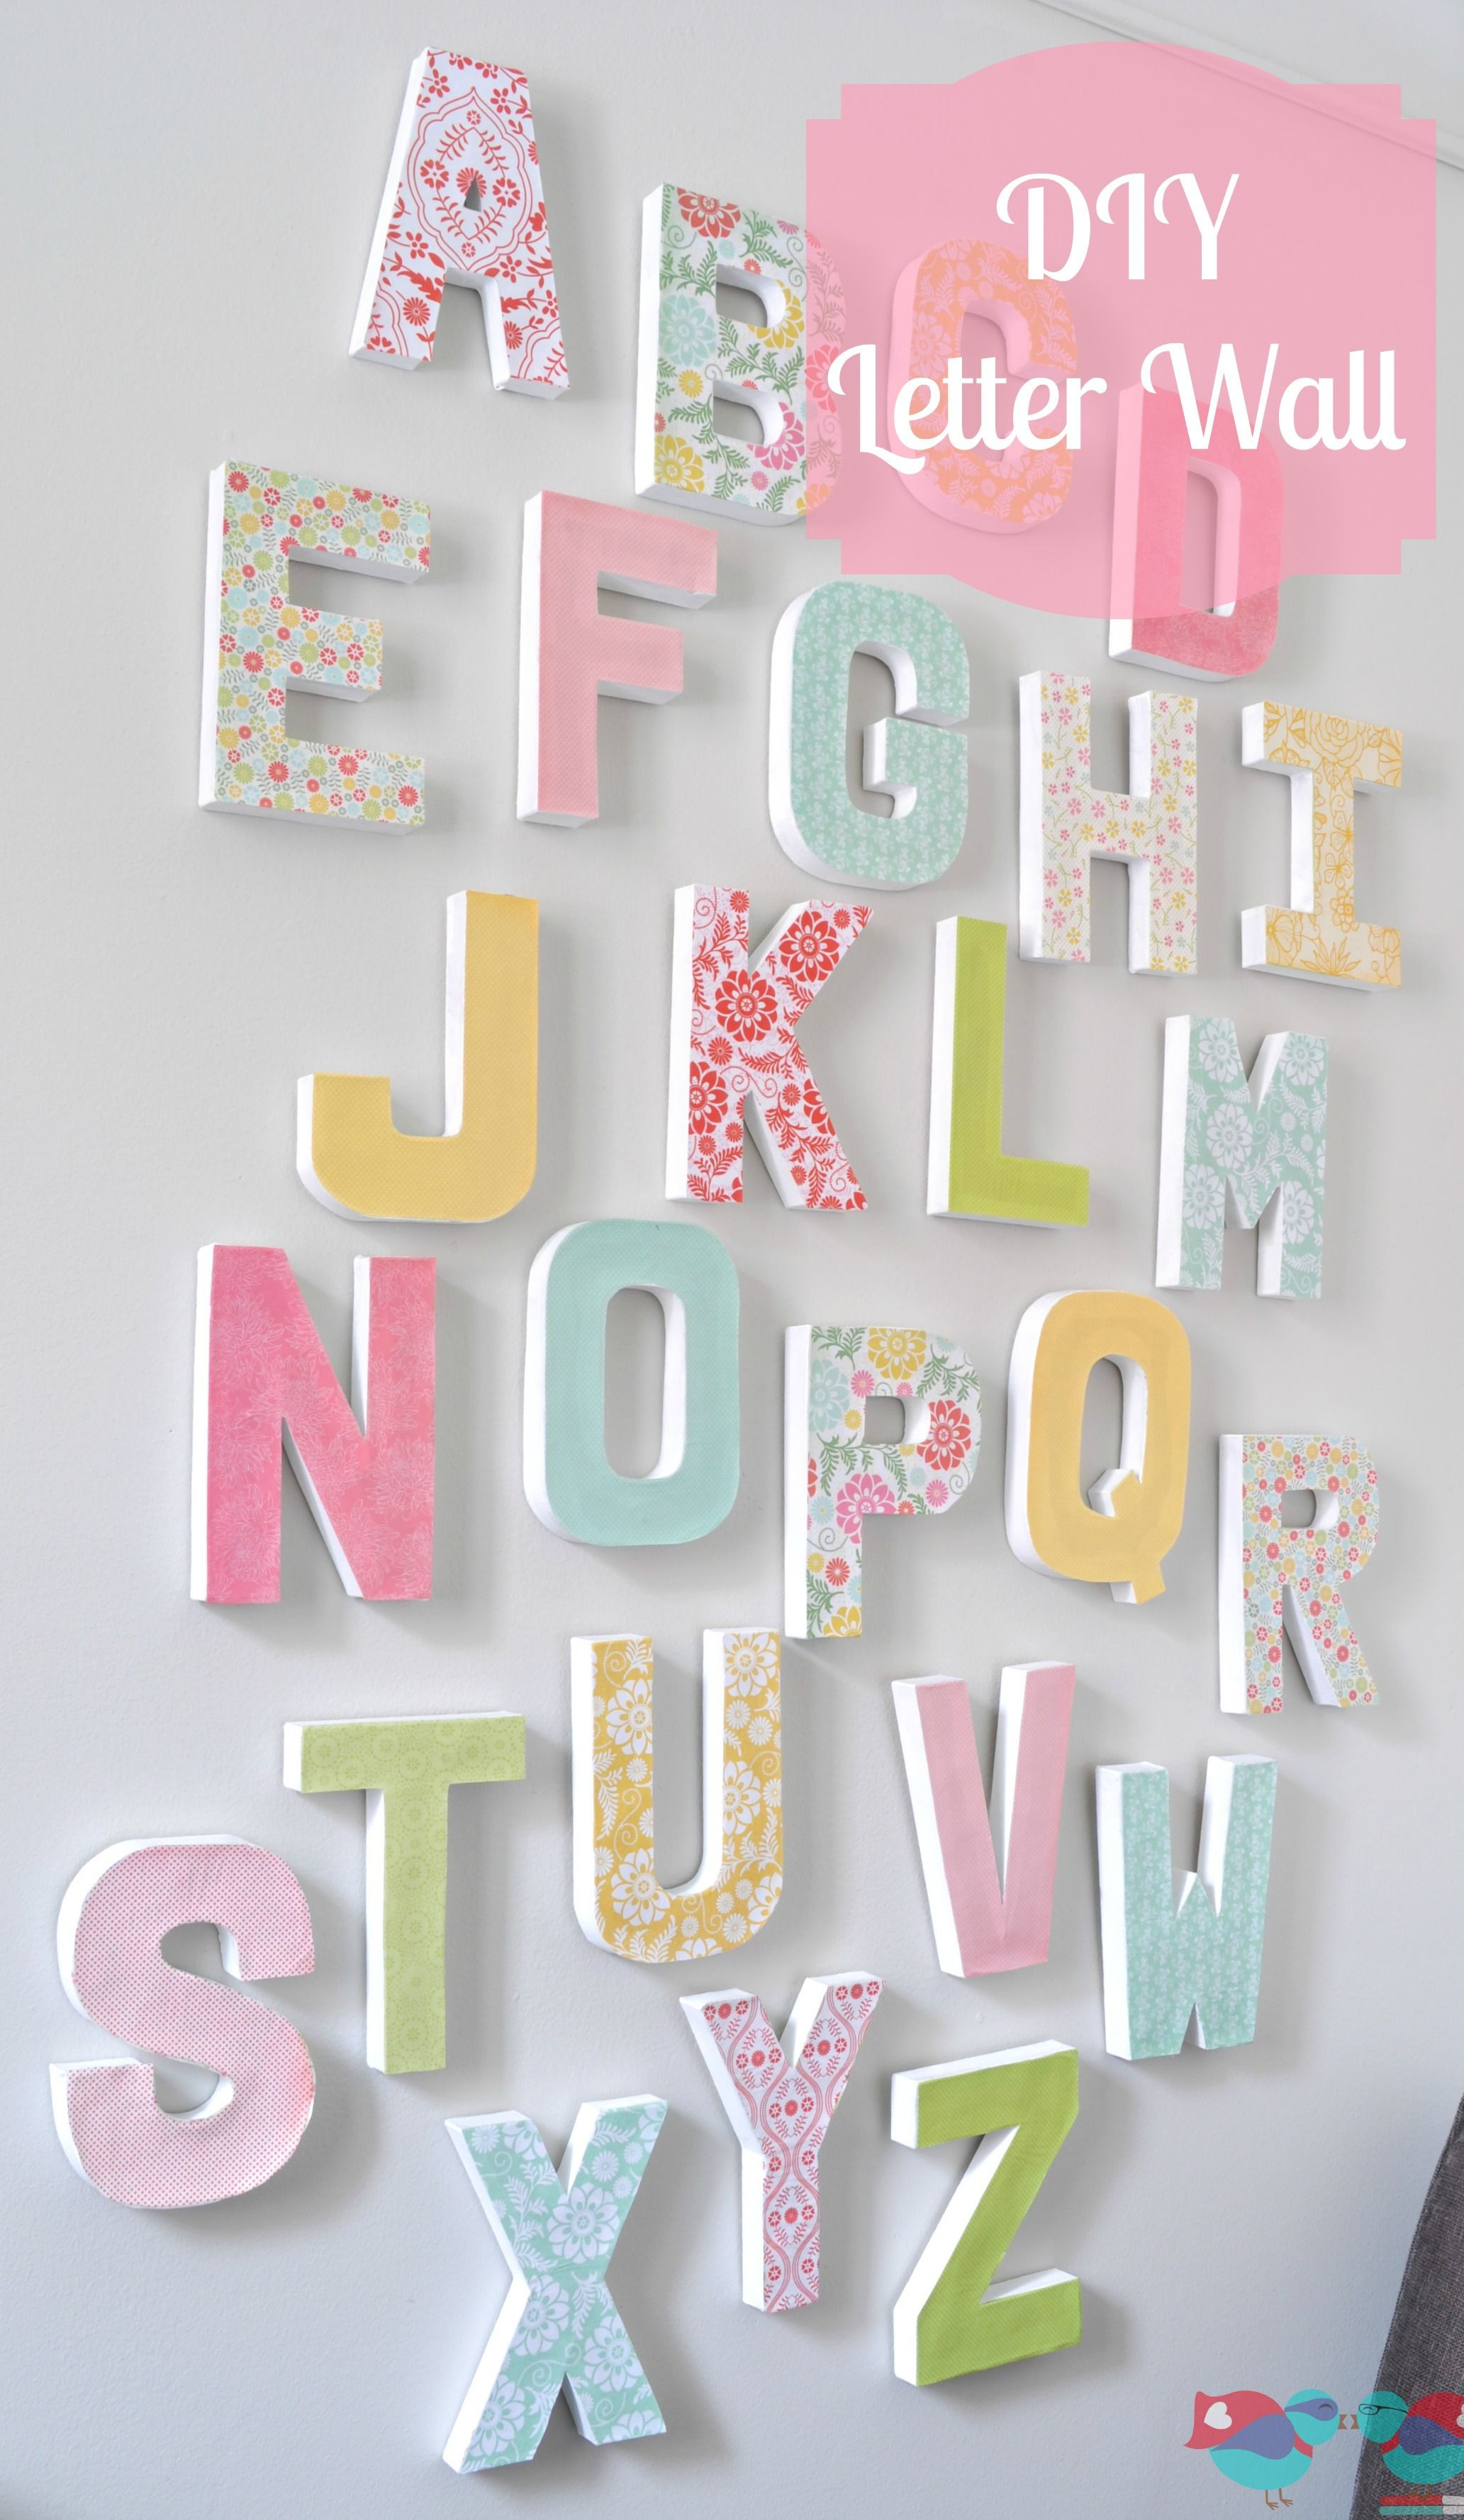 Best ideas about DIY Wall Letters . Save or Pin DIY LETTER WALL DECOR Craft with JOANN Now.